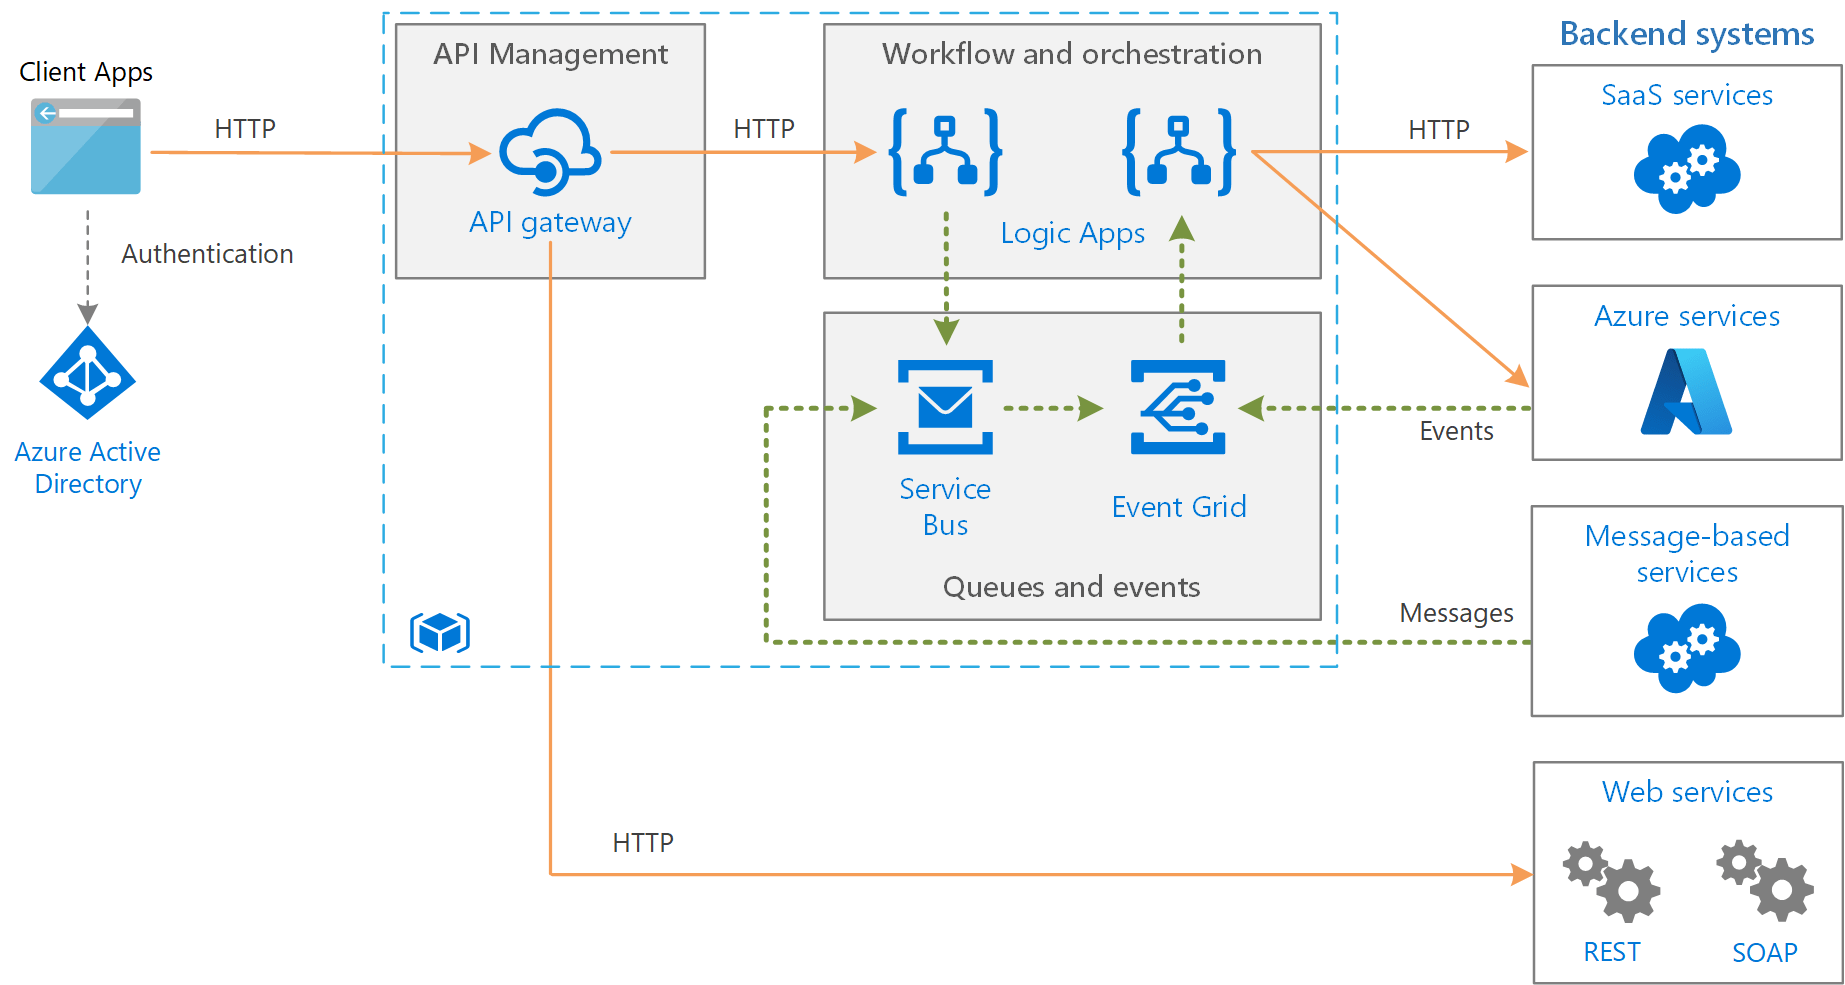 microsoft infrastructure diagram solar water heater schematic enterprise integration using message queues and events azure architecture